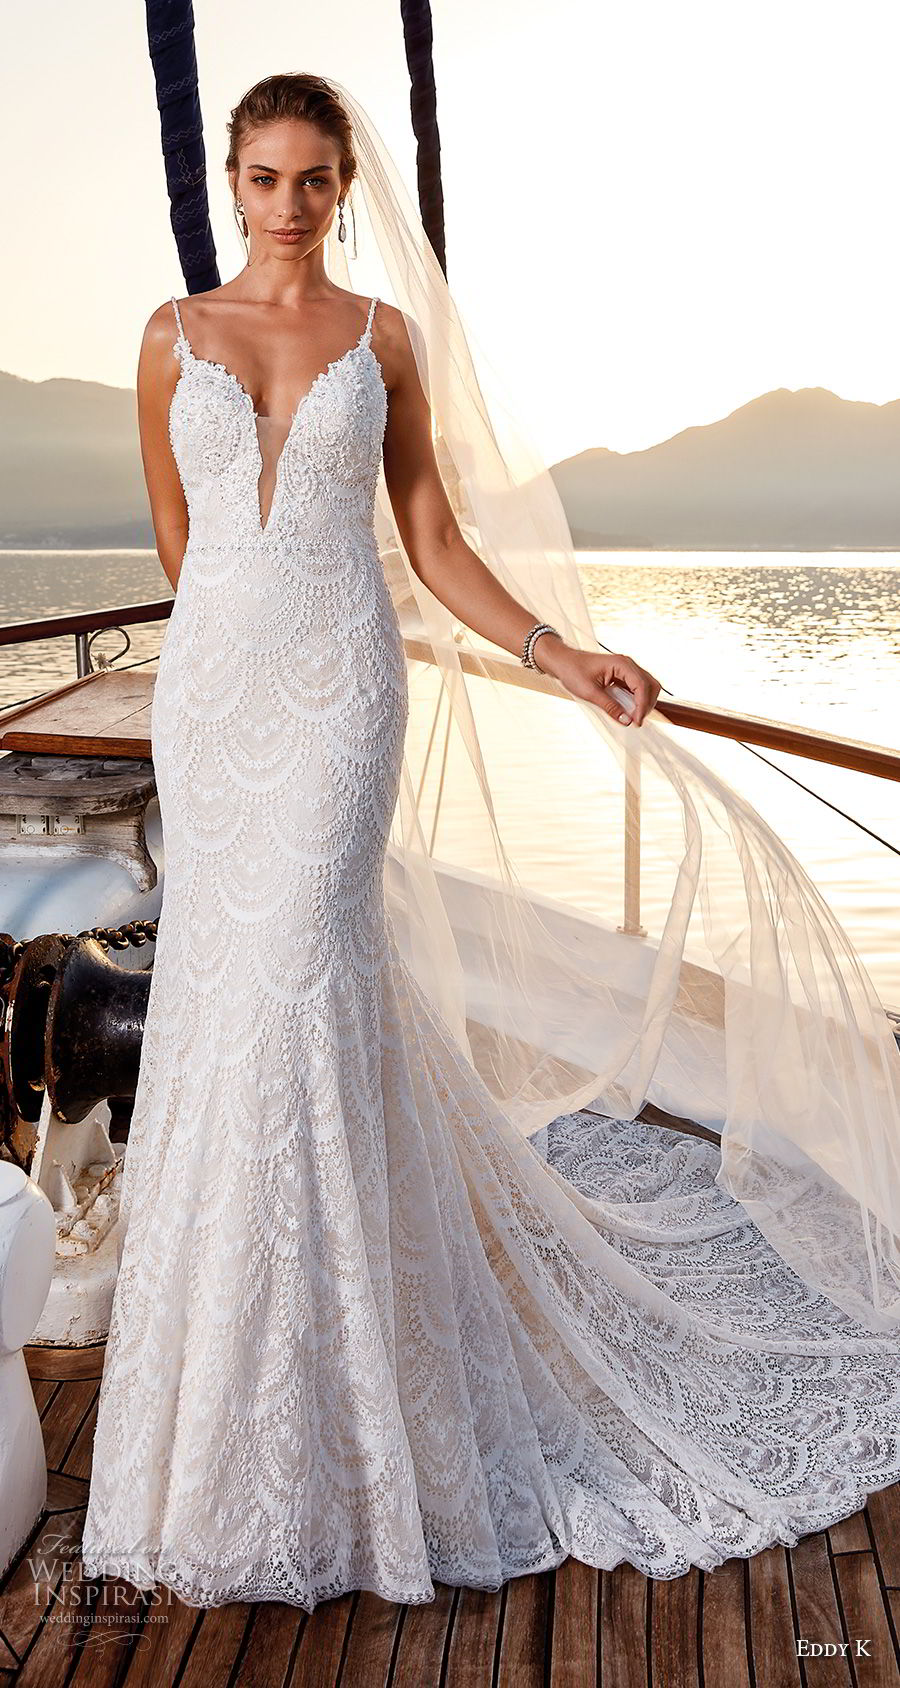 eddy k 2018 bridal sleeveless spaghetti strap deep plunging sweetheart neckline full embellishment romantic fit and flare wedding dress open back chapel train (7) mv